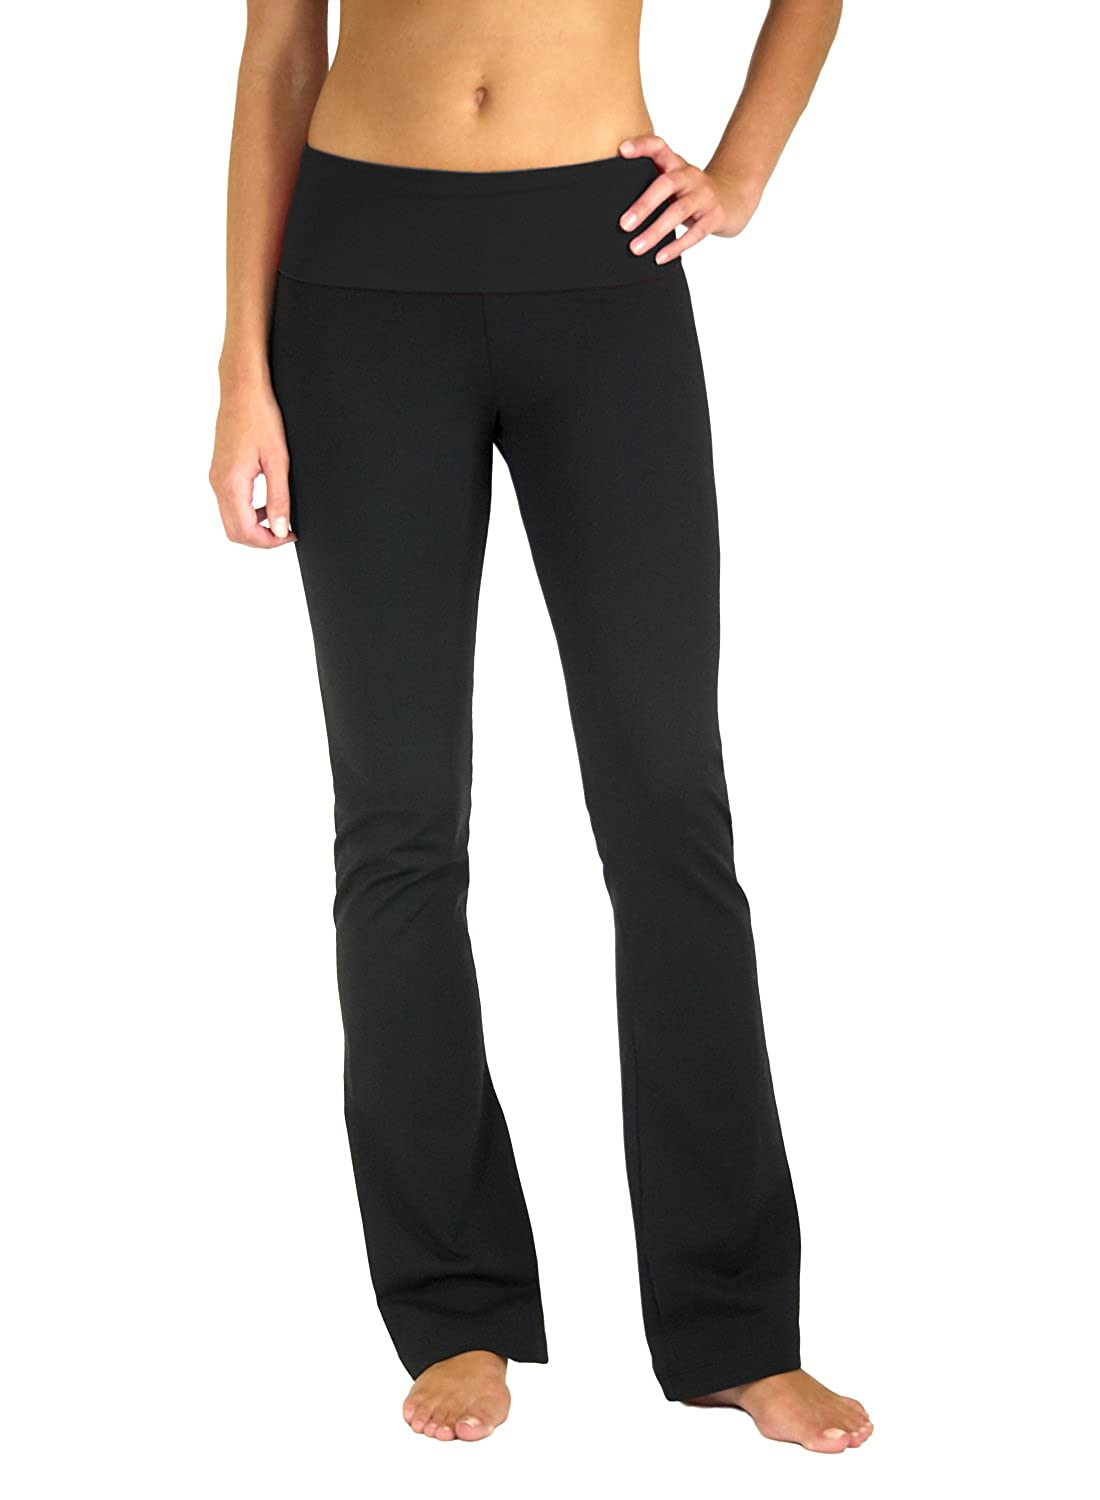 ea430016c779a The Best Yoga Pants for Tall Girls - The Tall Girl's Guide to Fashion